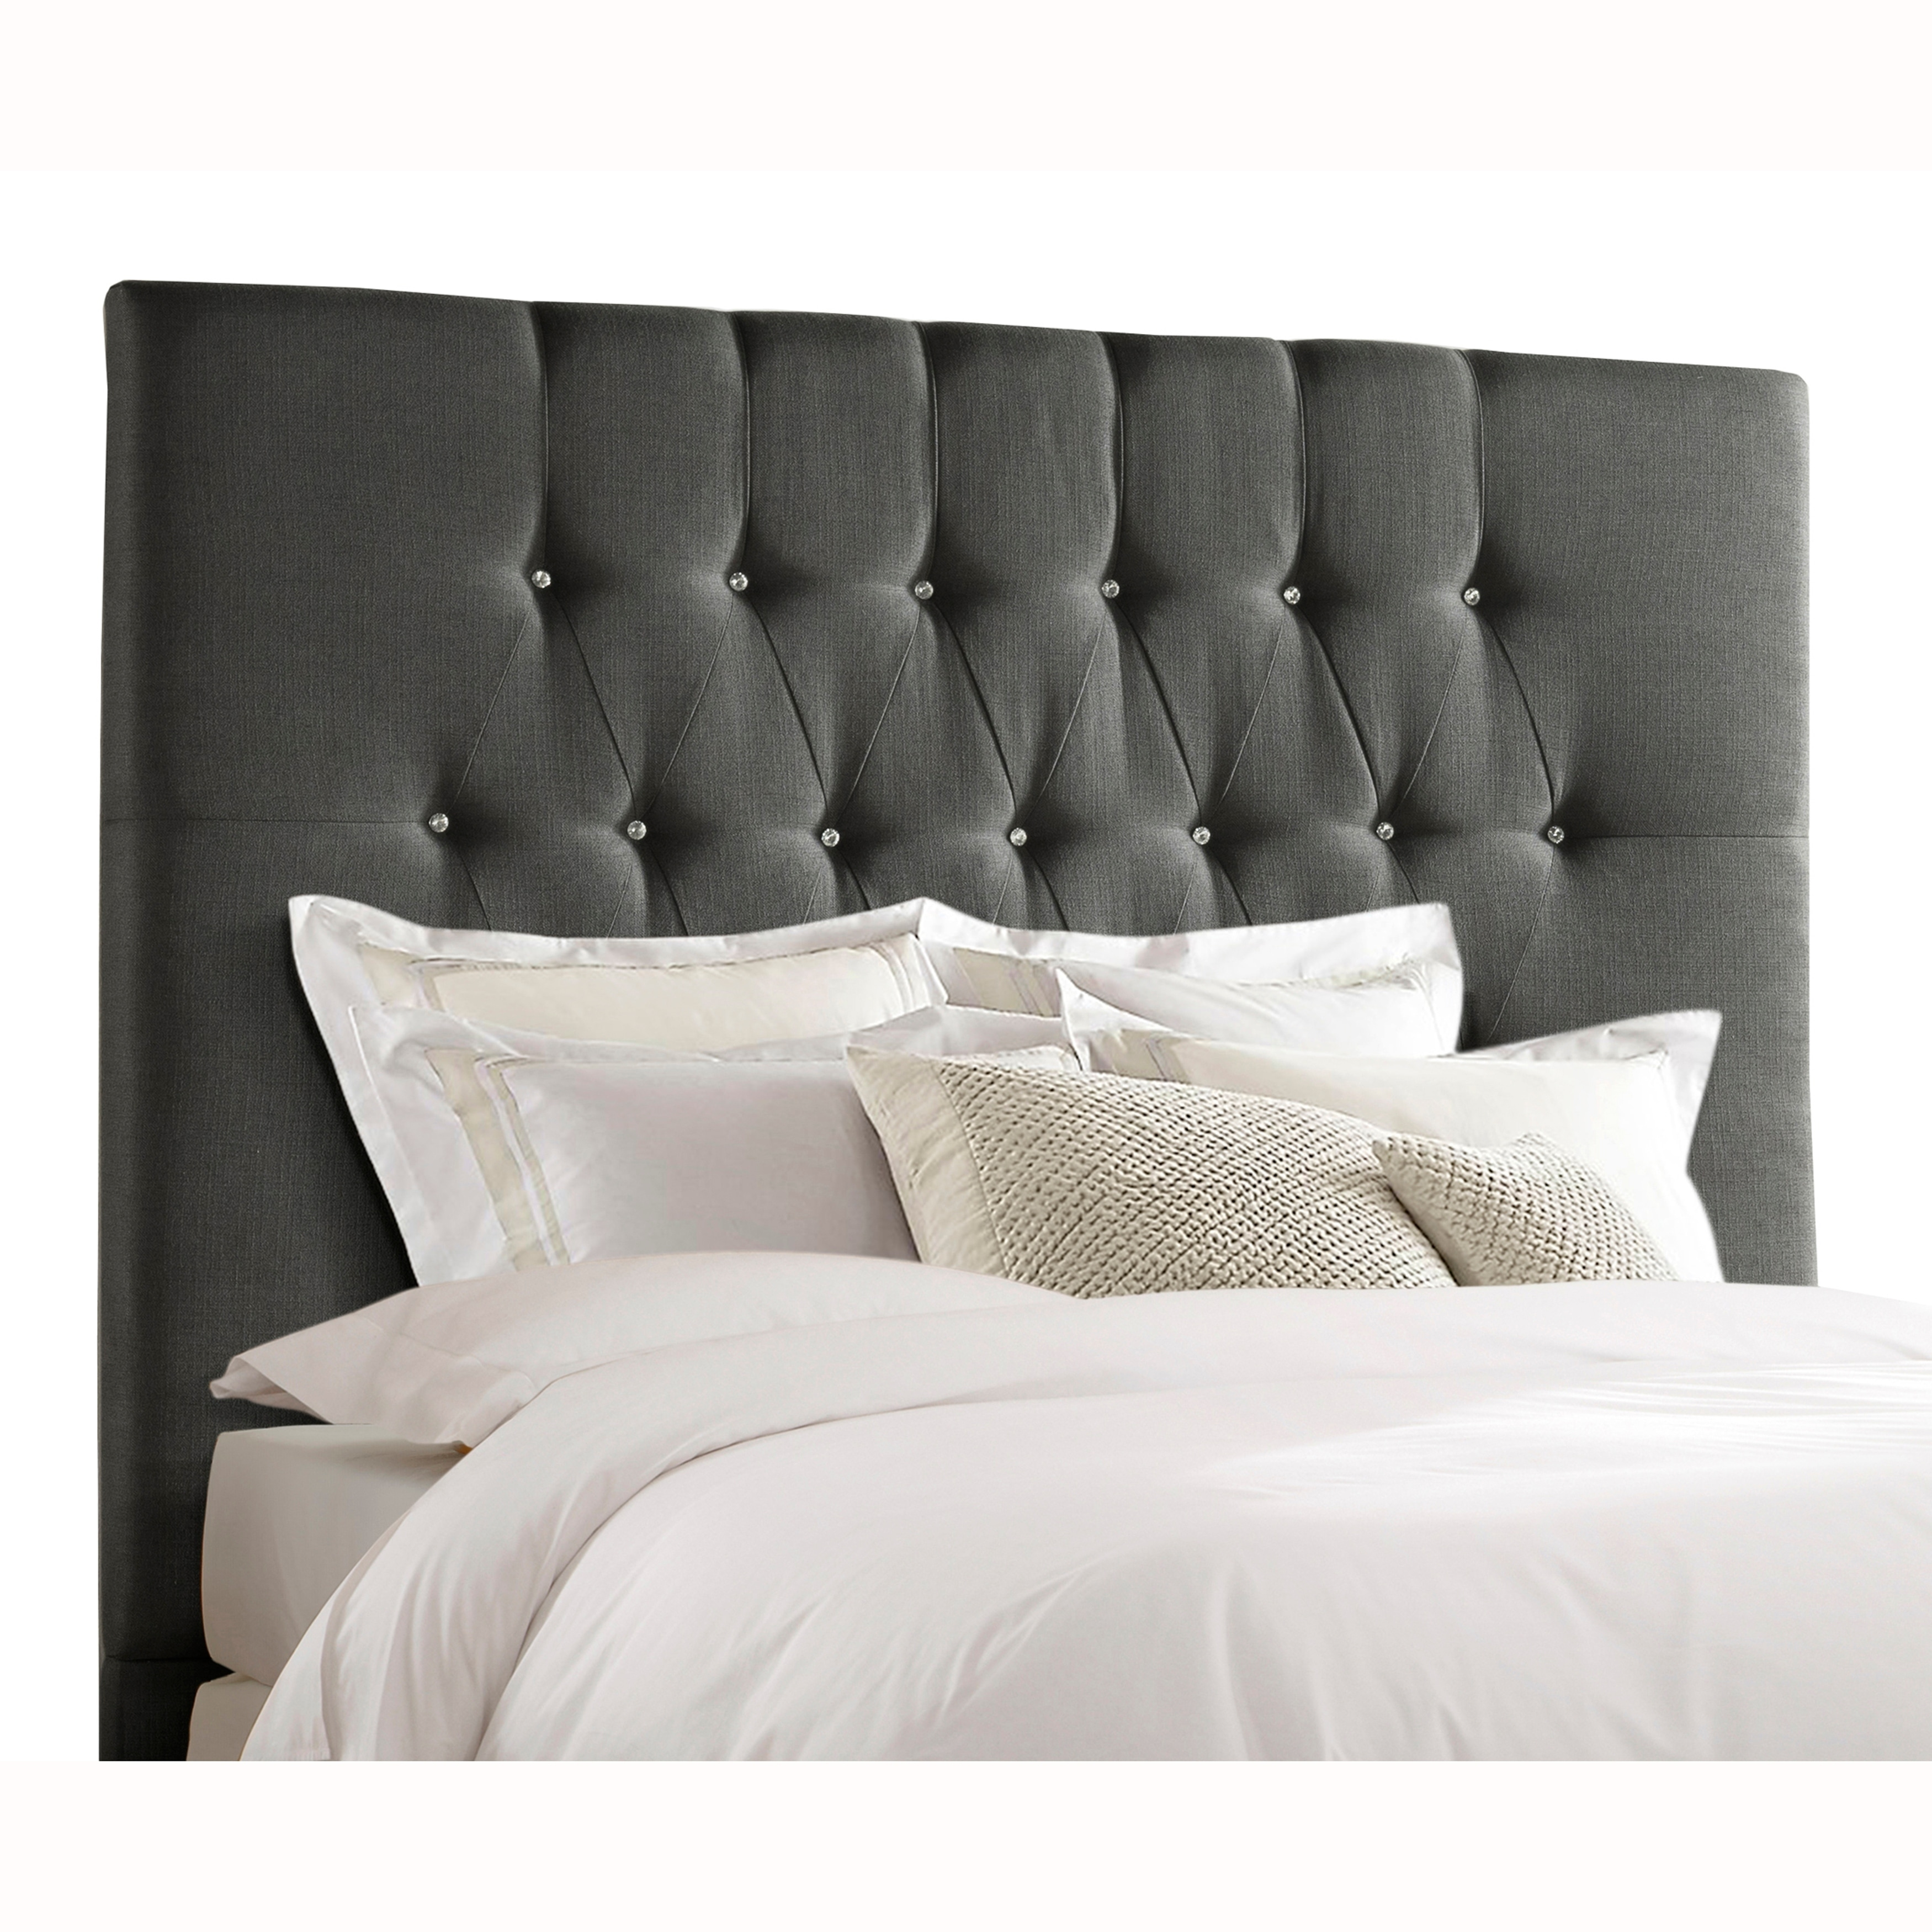 Shop Tall Tufted Charcoal Grey Upholstered King Headboard Overstock 27678931